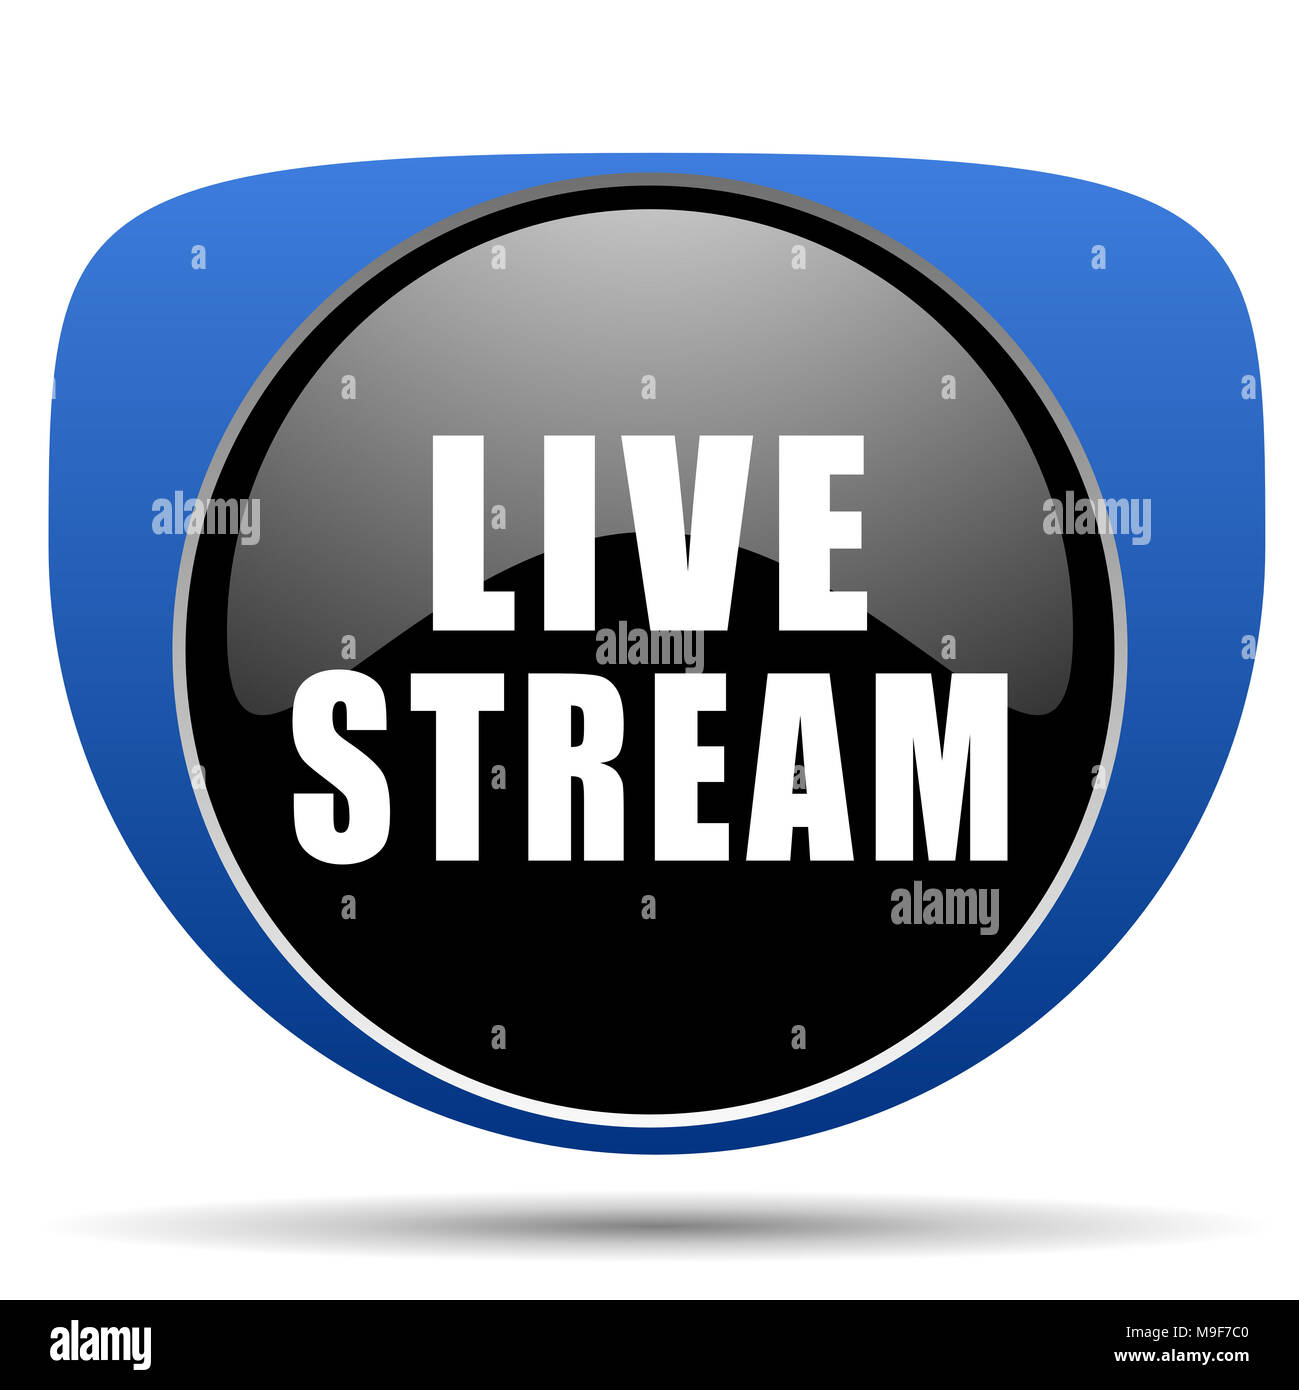 Live stream web icon - Stock Image